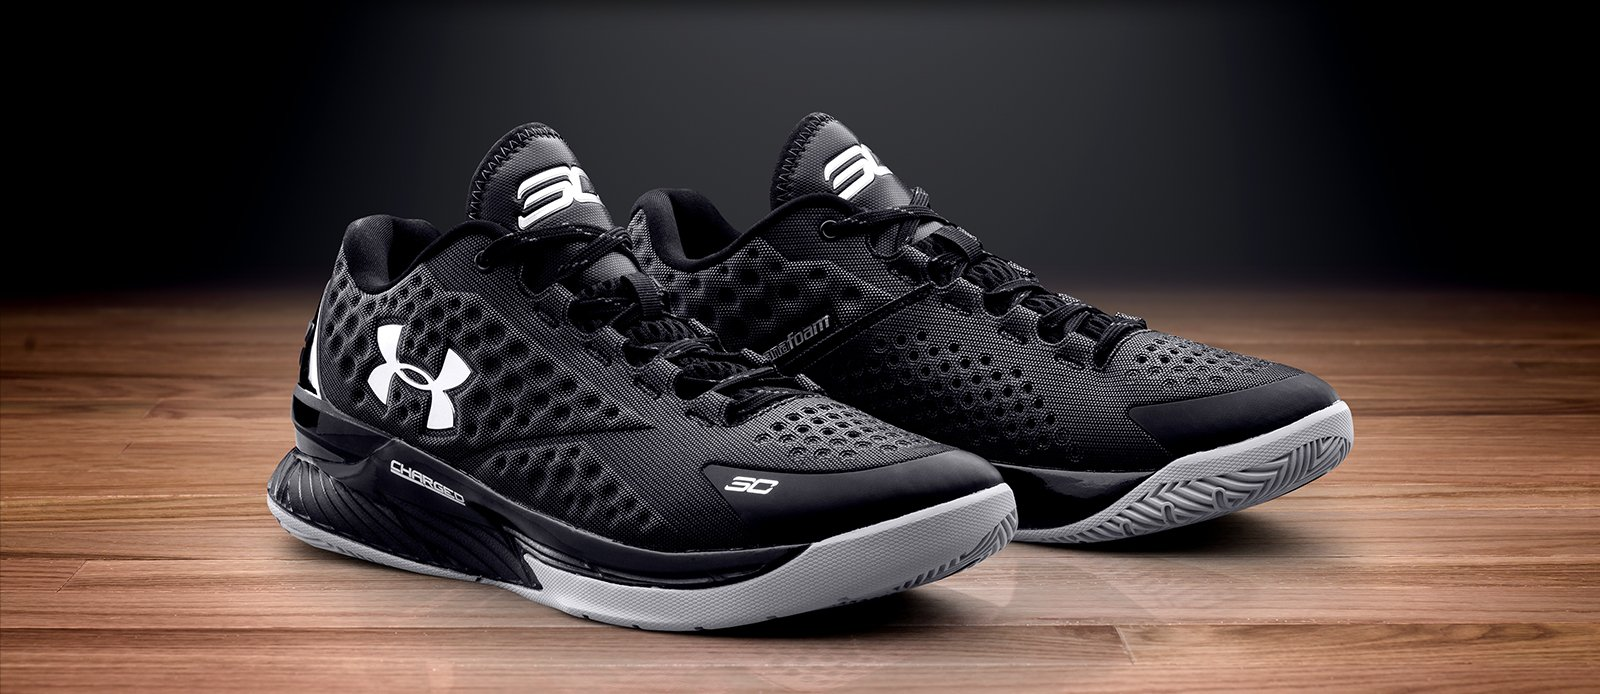 buy popular 7f1b3 cb897 Under Armour Curry One Low 'Two-A-Days' Pack - Available Now ...